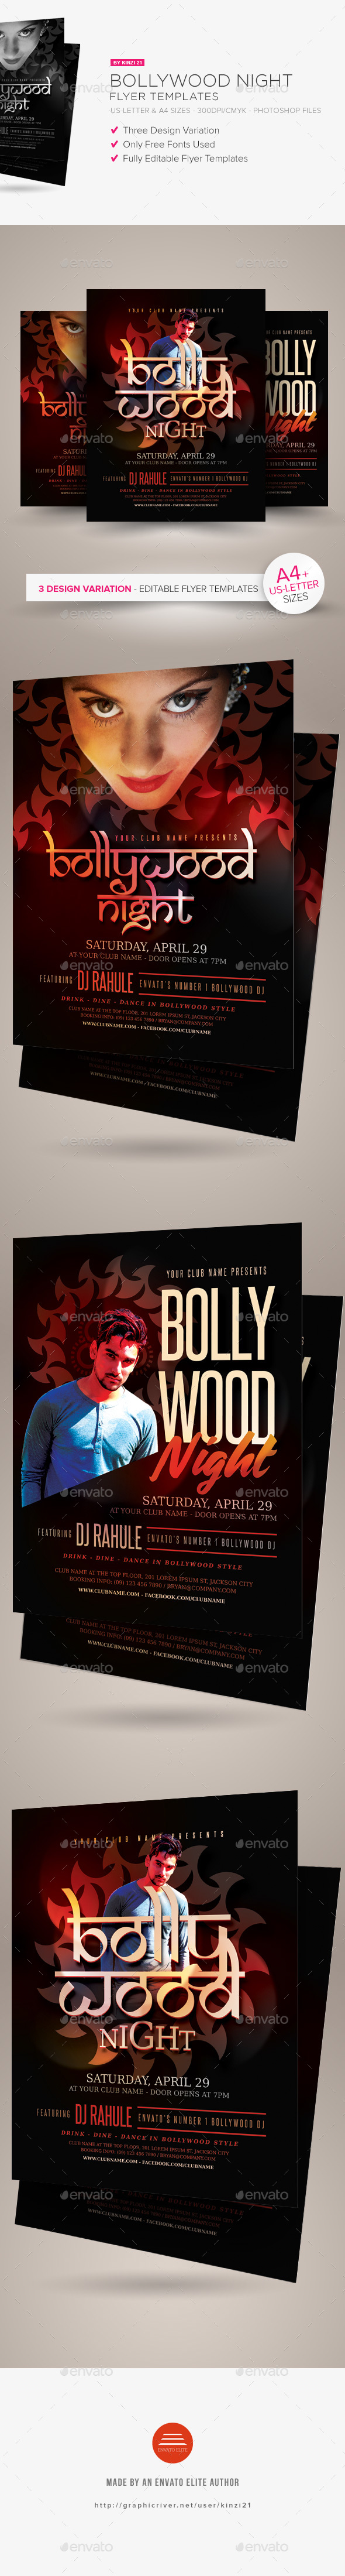 Bollywood Night Flyer Templates - Clubs & Parties Events